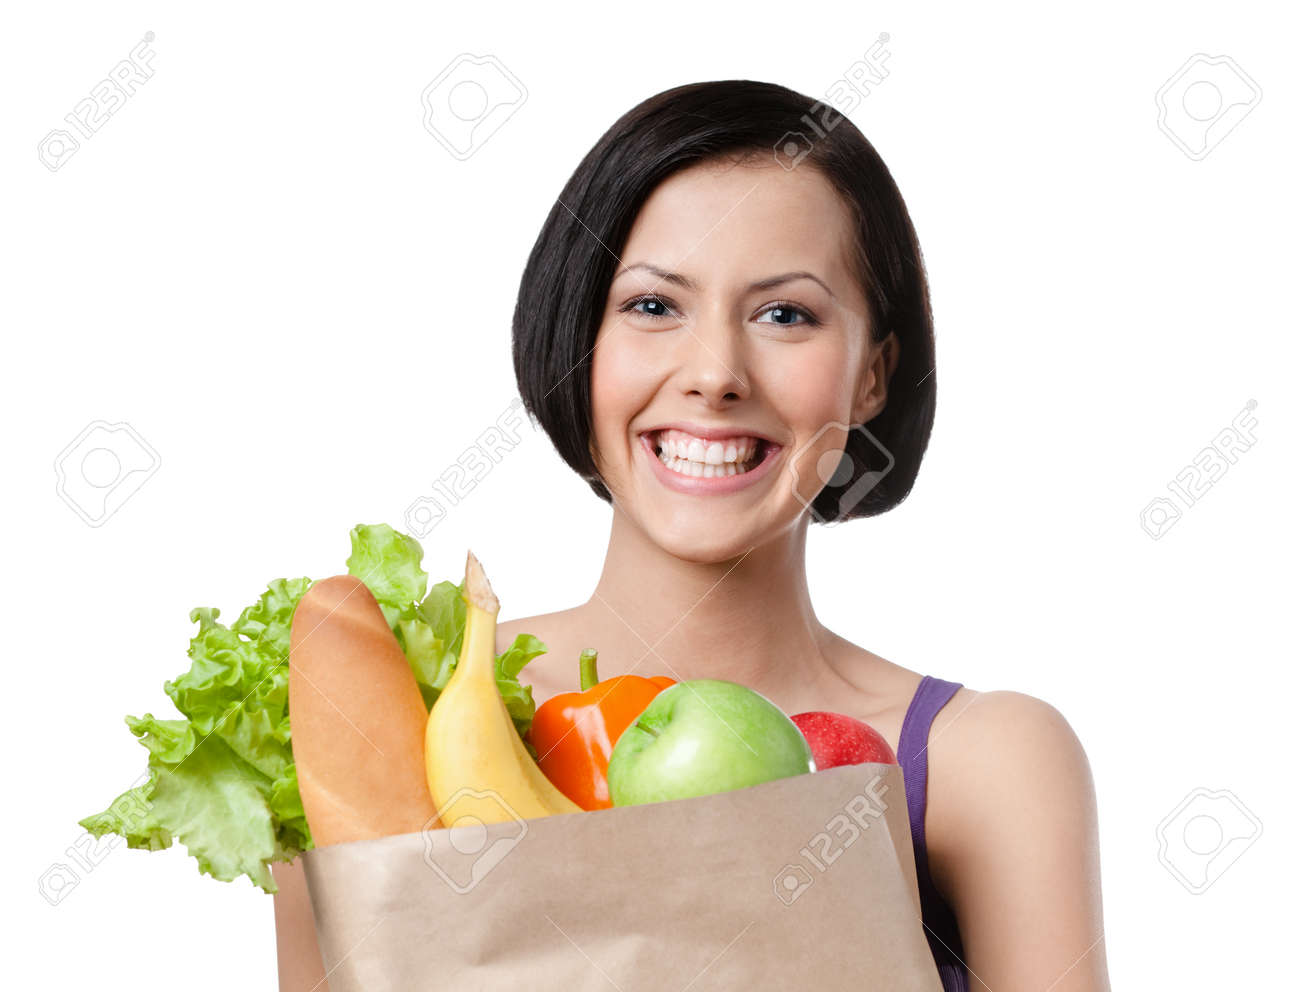 Healthy bargain of fruit and vegetables, Isolated, white background Stock Photo - 14730249